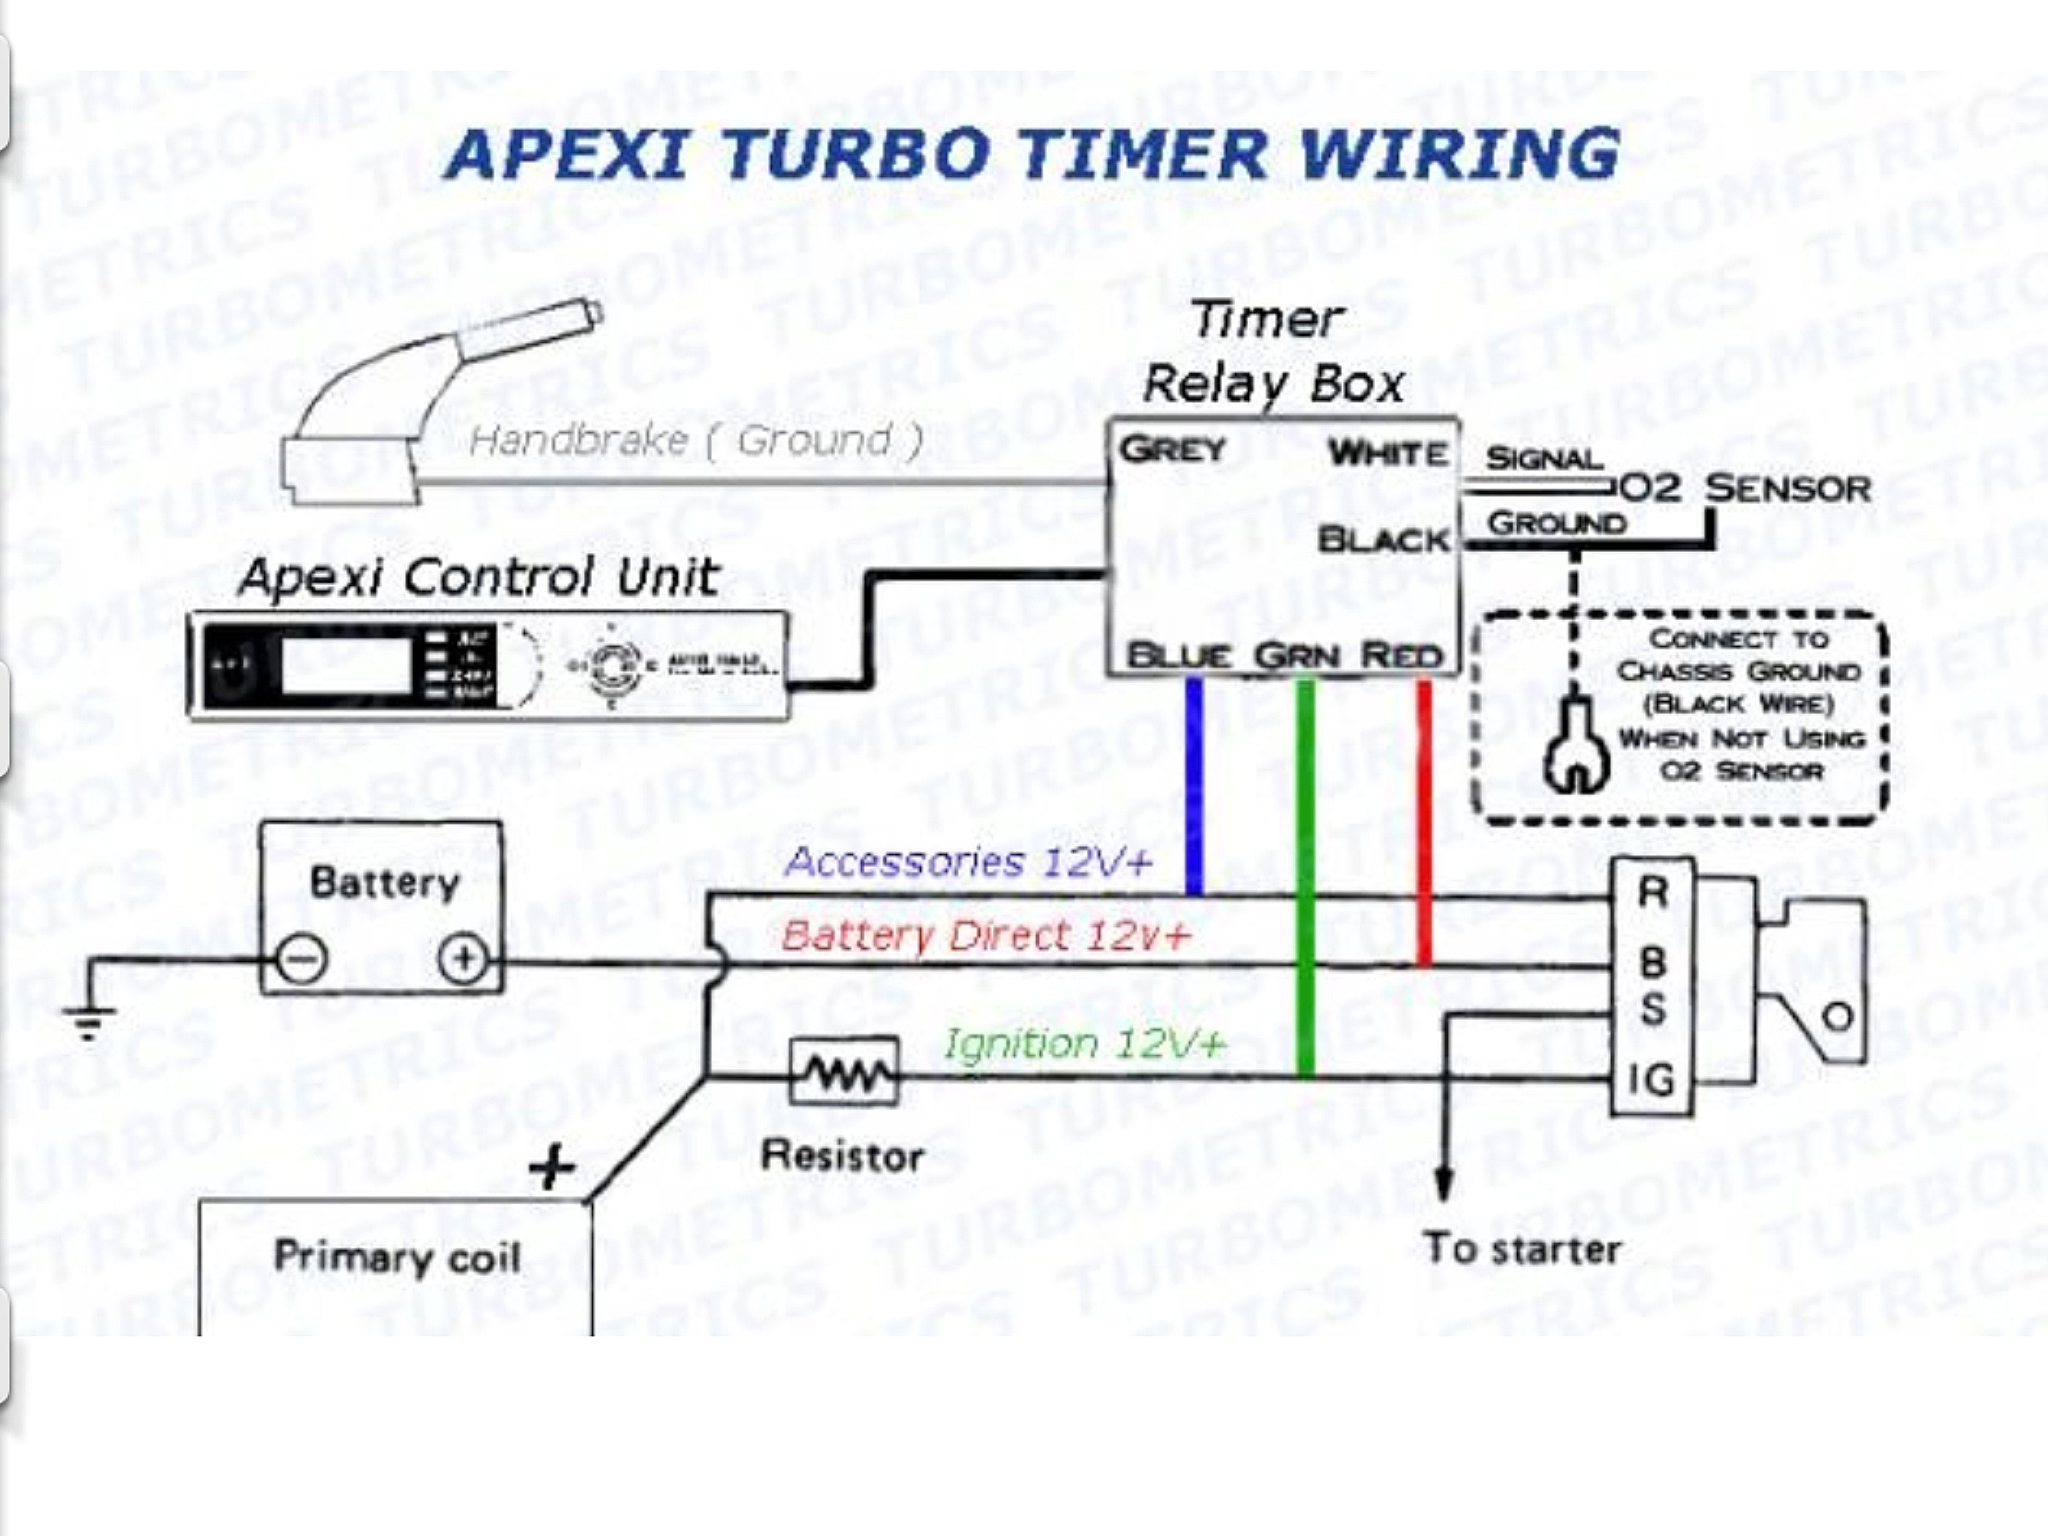 Greddy Turbo Timer Wiring Diagram from www.areyourshop.net